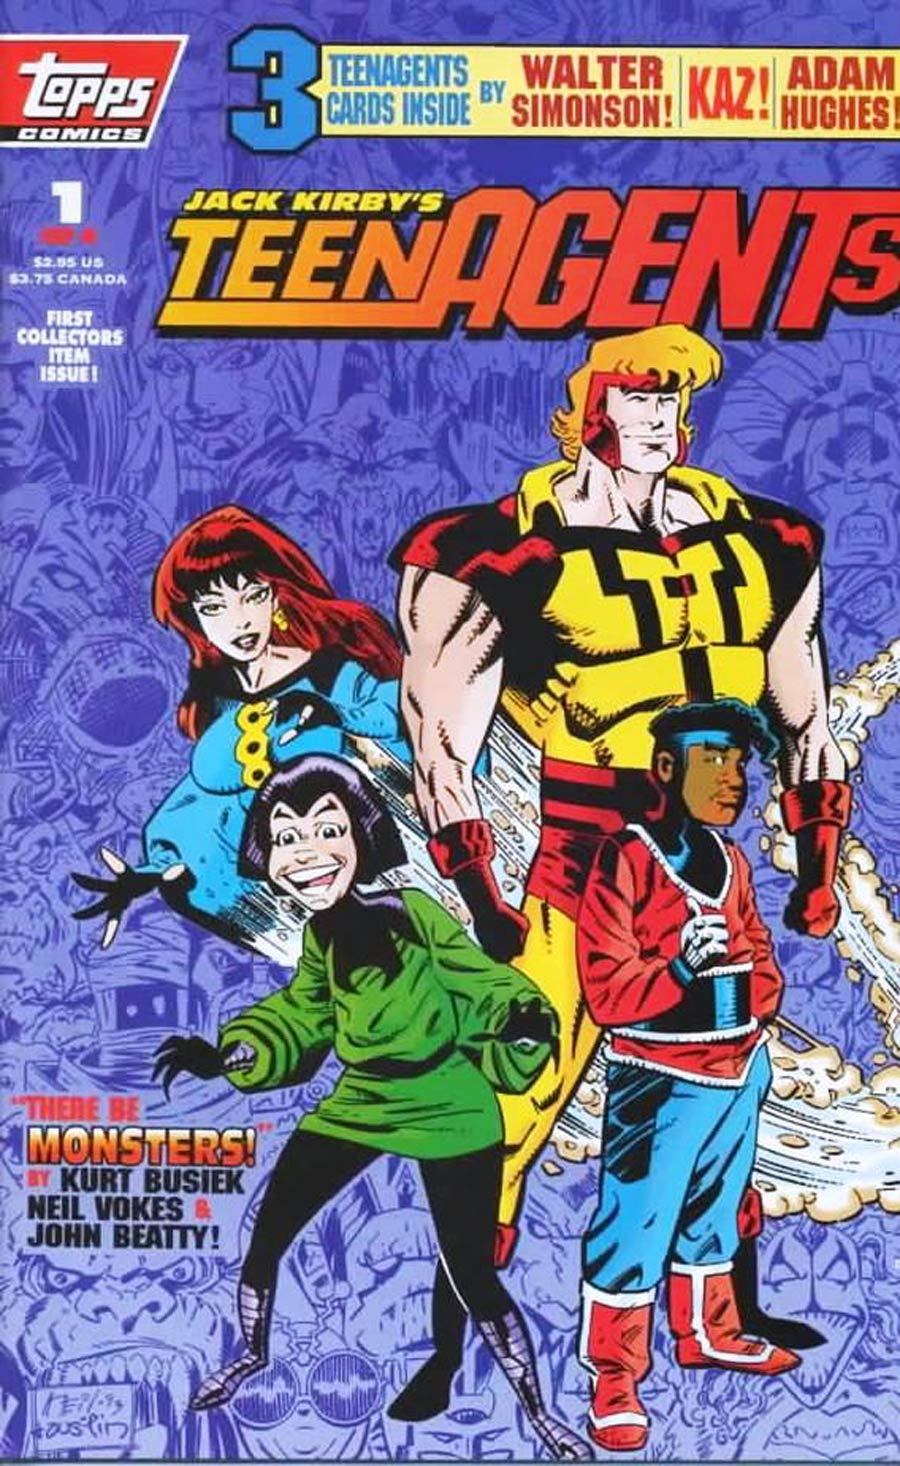 Jack Kirbys Teenagents #1 Cover A With Polybag